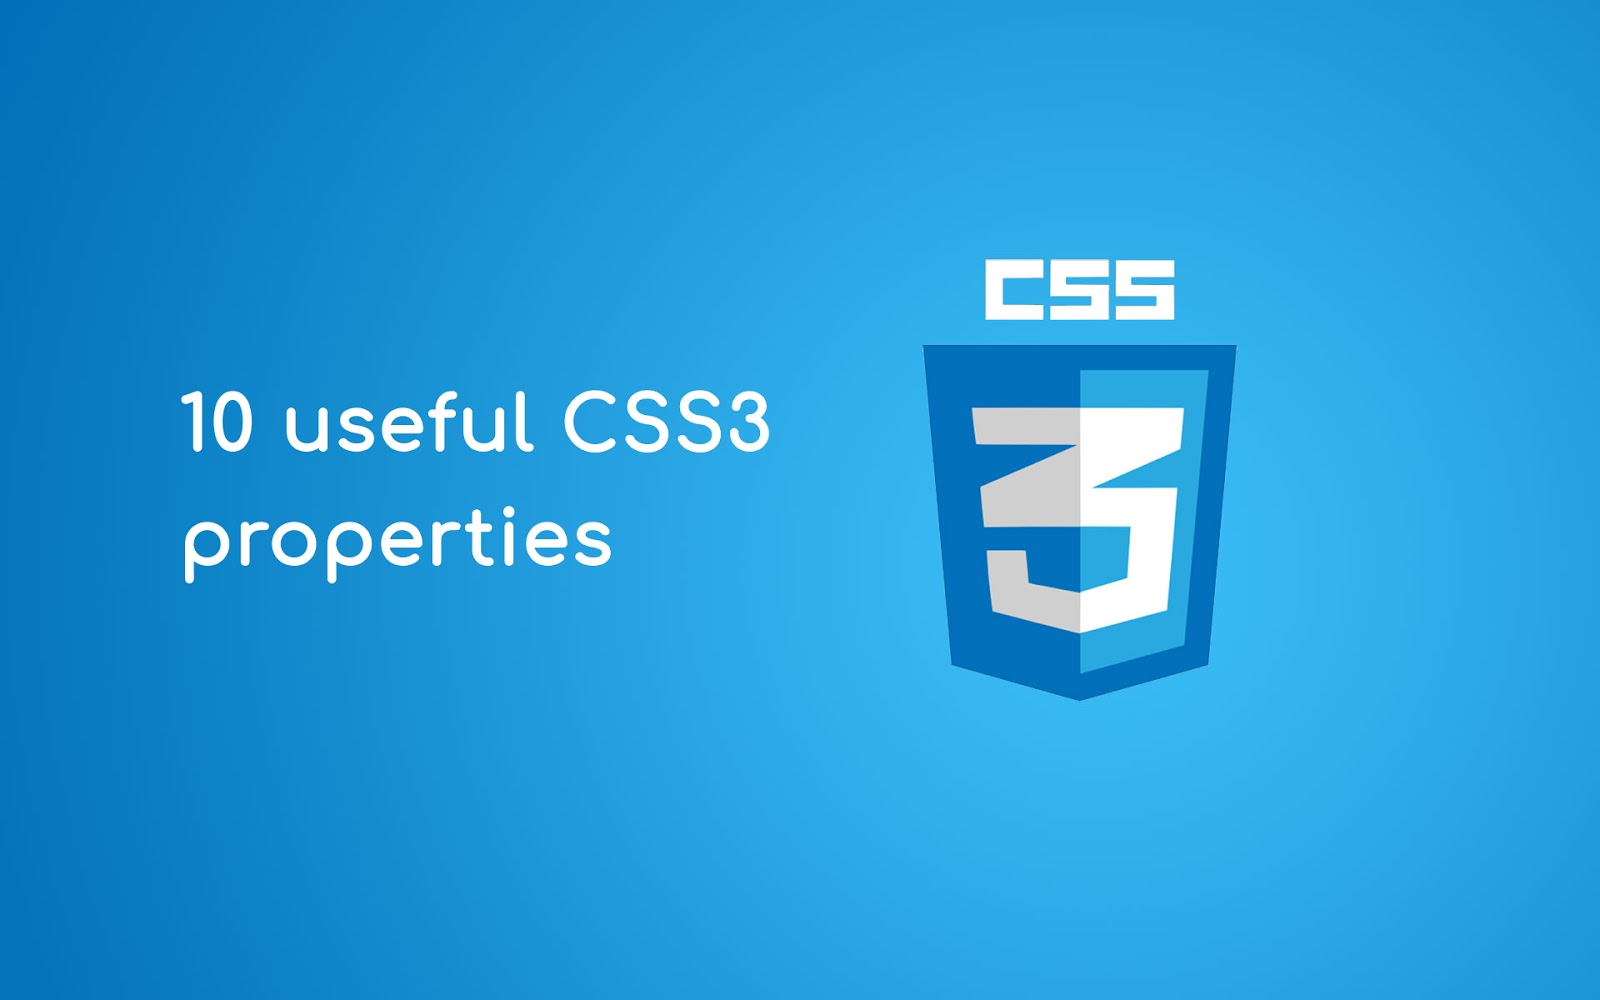 Most useful CSS3 properties